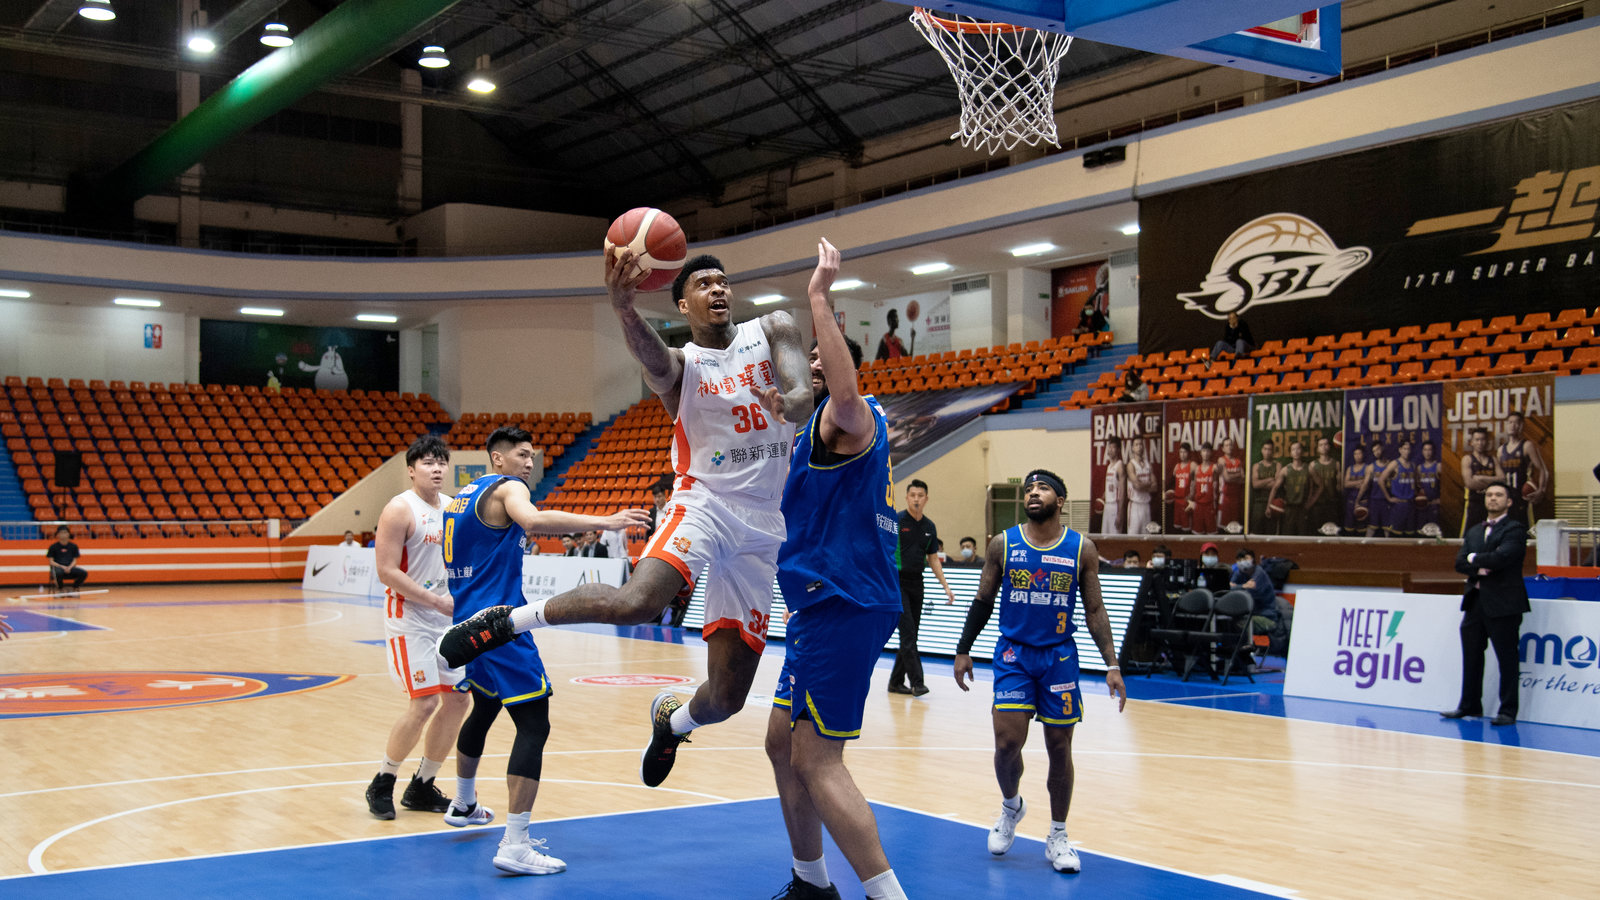 Can the N.B.A. Learn From Taiwan's Basketball Bubble ...